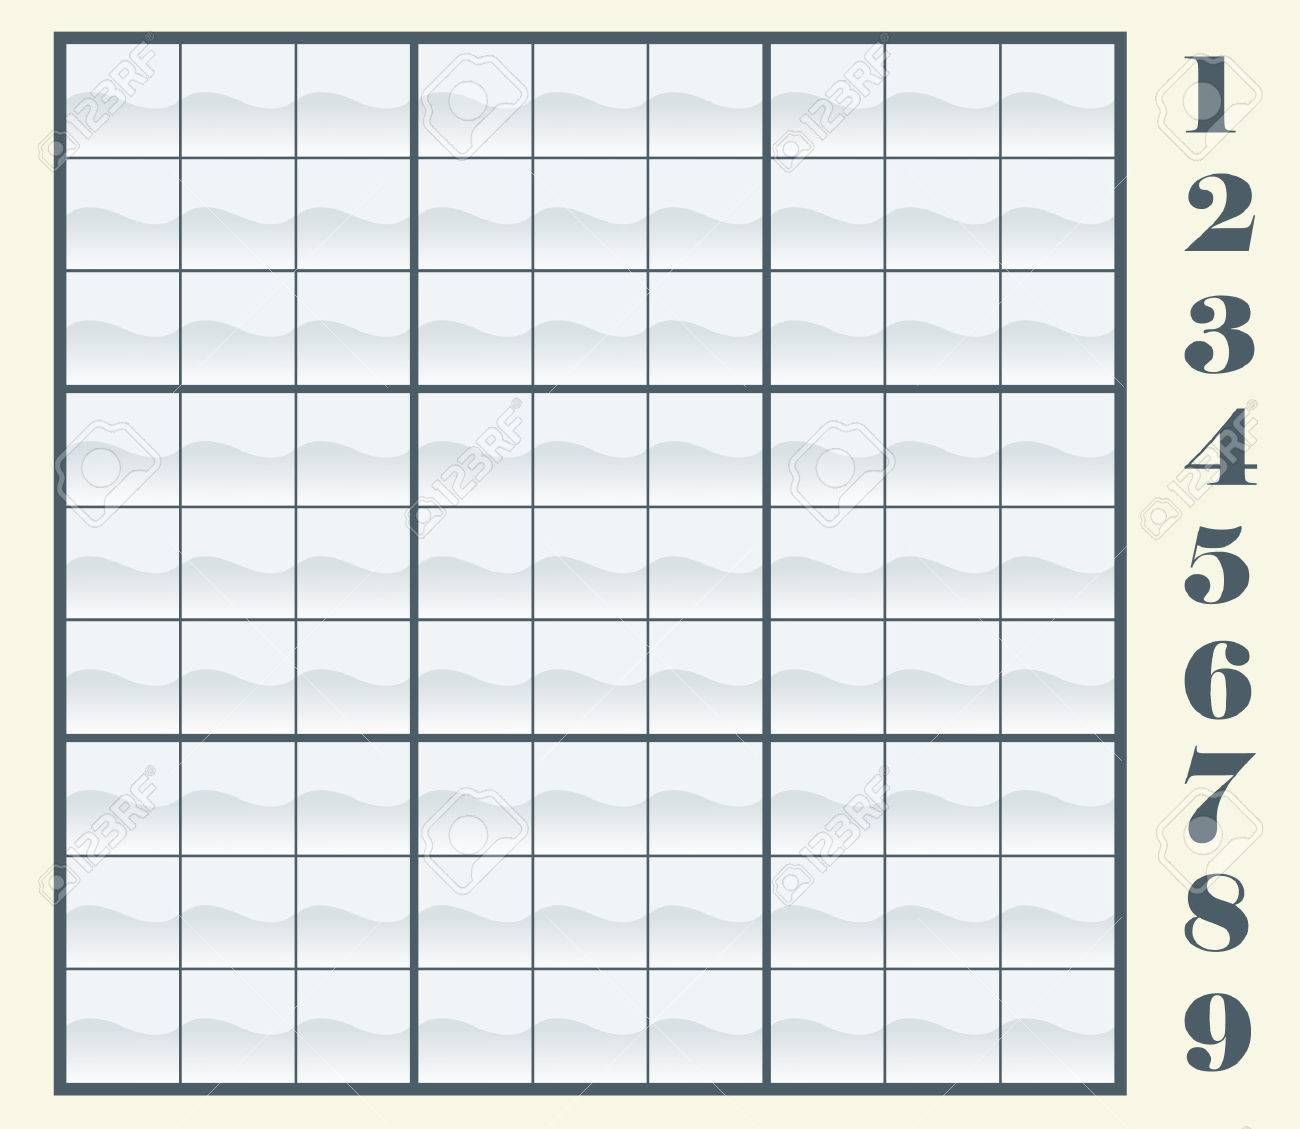 Create Your Own Sudoku Scheme By Copying/pasting The Numbers ...